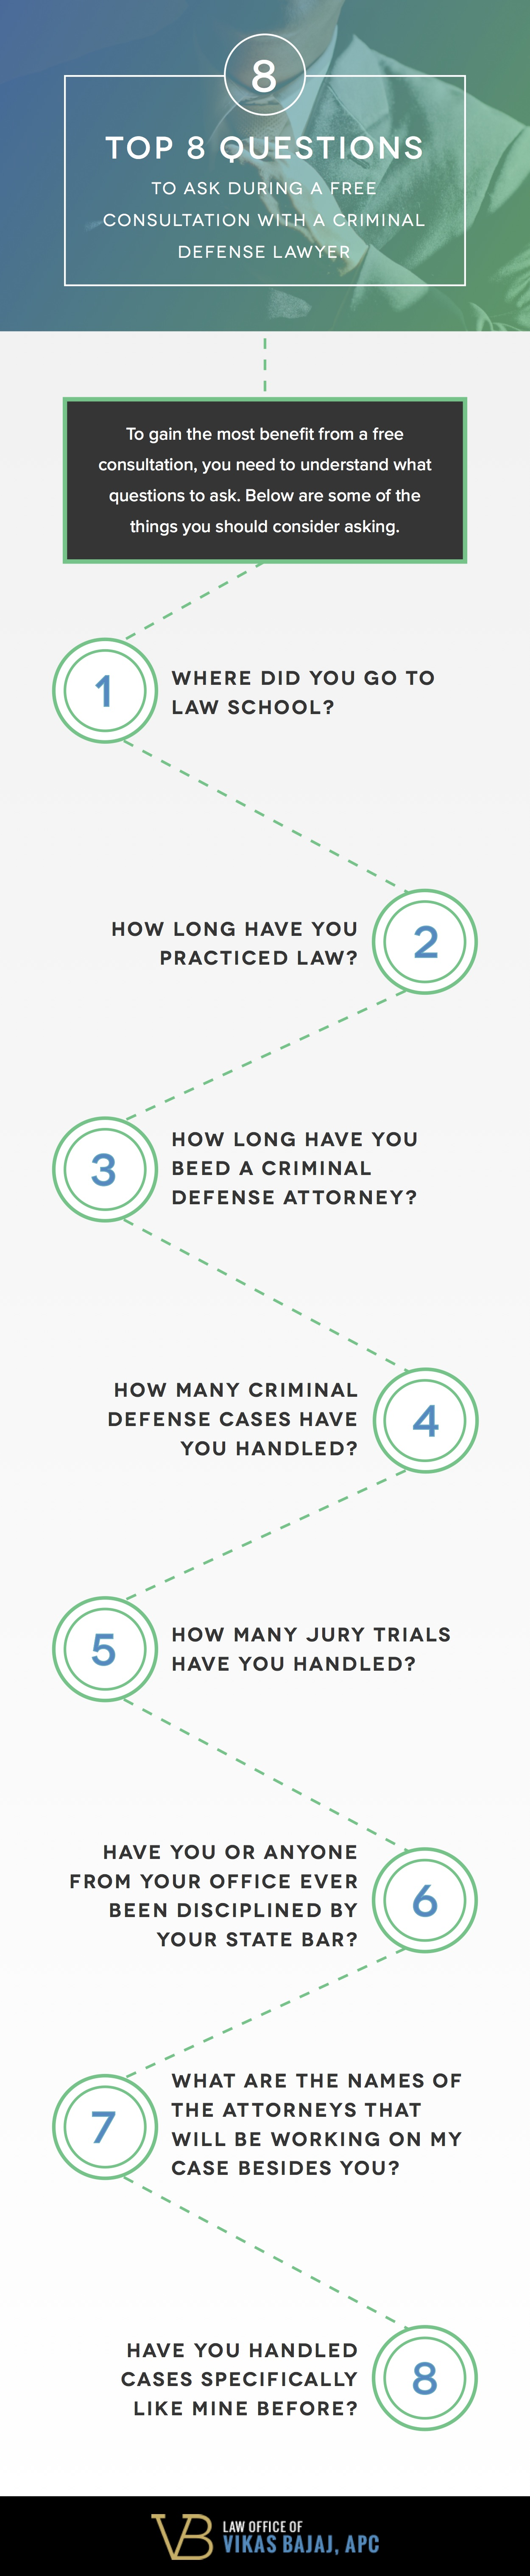 top-8-questions-to Ask Your Criminal Defense Attorney-infographic